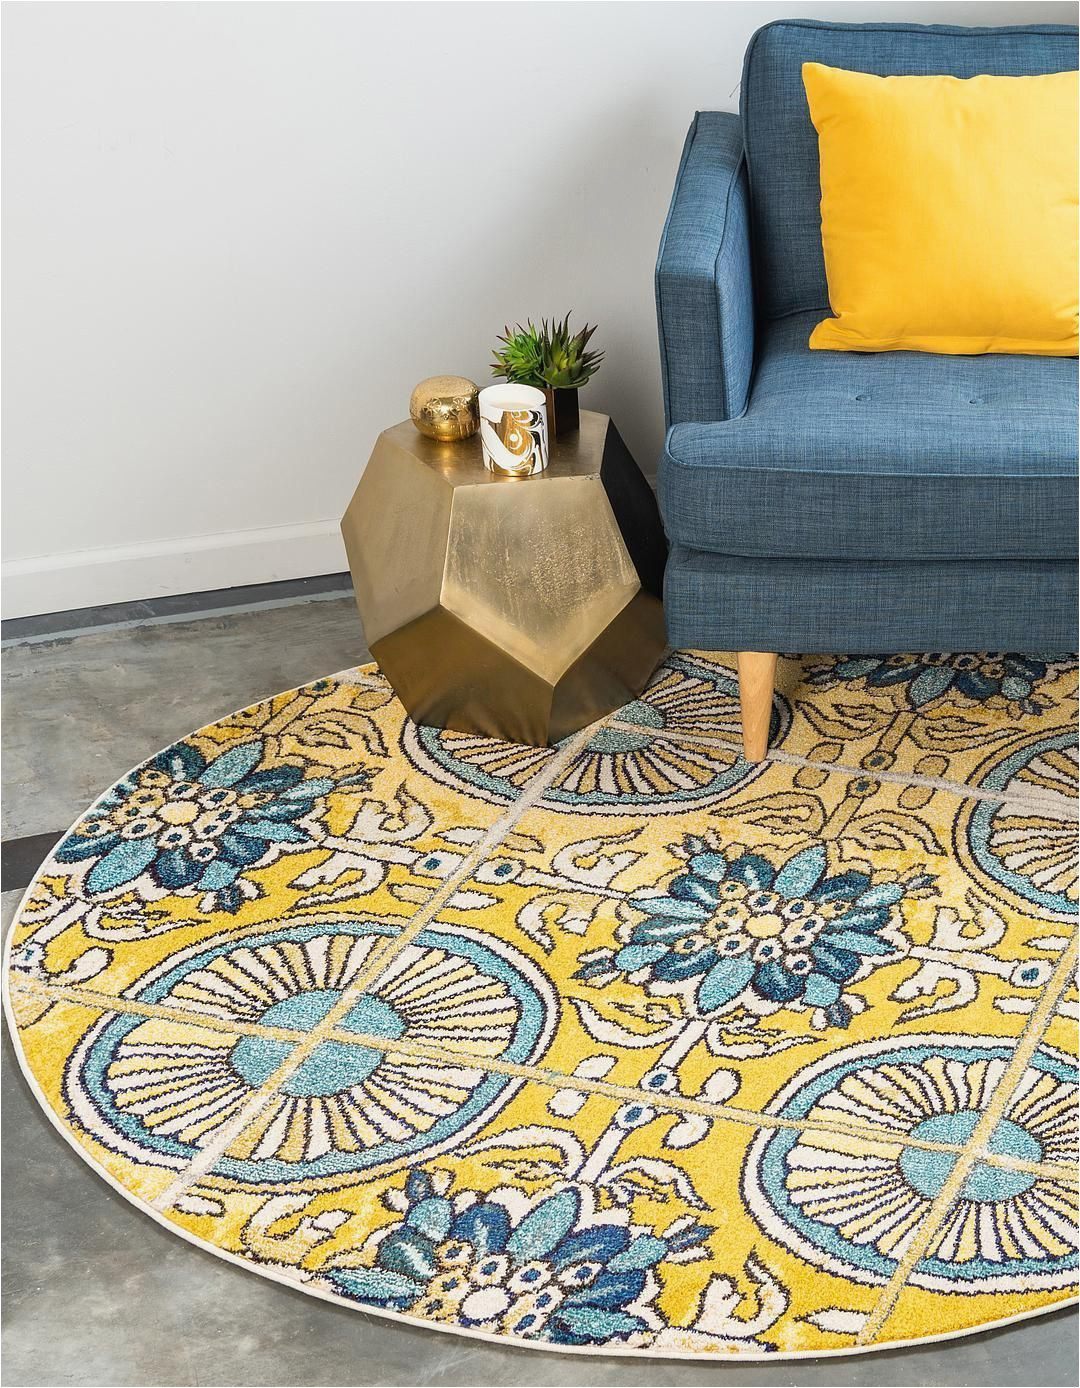 Bed Bath and Beyond Round area Rugs Gold 8 X 8 Hyacinth Round Rug area Rugs